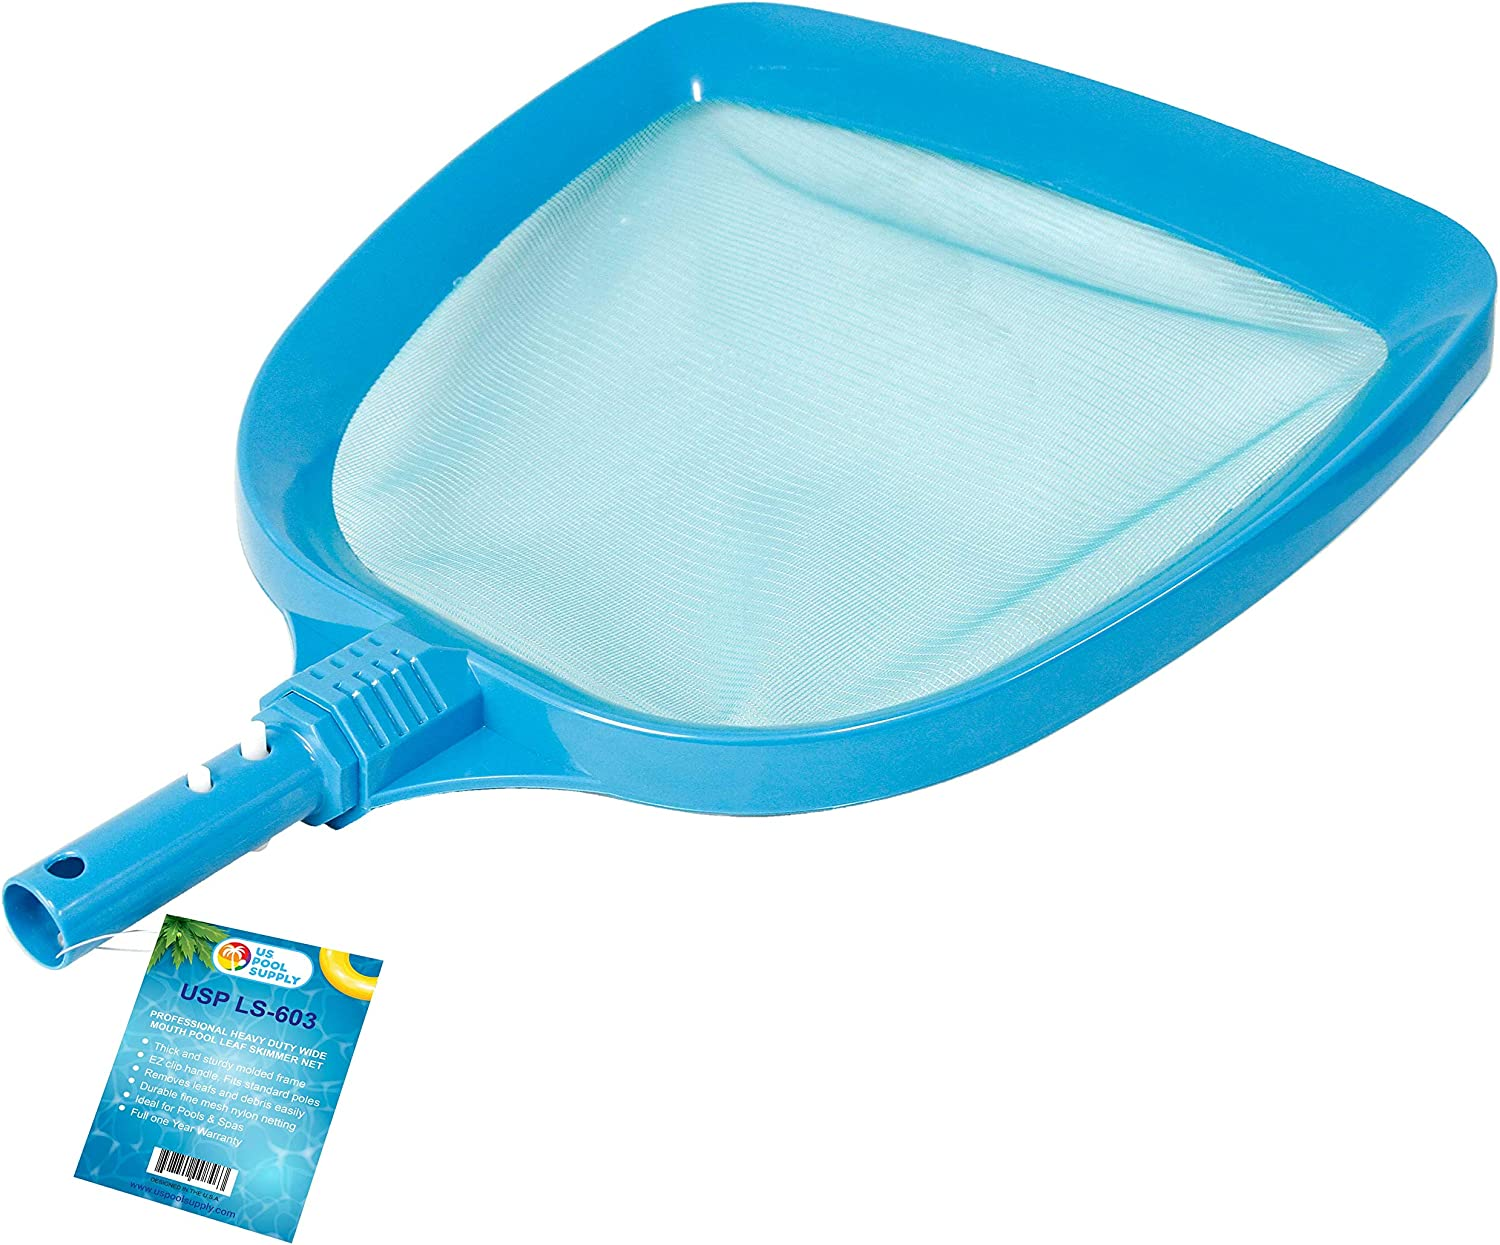 """U.S. Pool Supply Professional Heavy Duty Large 15"""" x 16"""" Swimming Pool Leaf Skimmer Net - Wide Mouth Scoop Design for Faster Cleaning and Easier Debris Pickup and Removal - Safe EZ Clip Handle"""